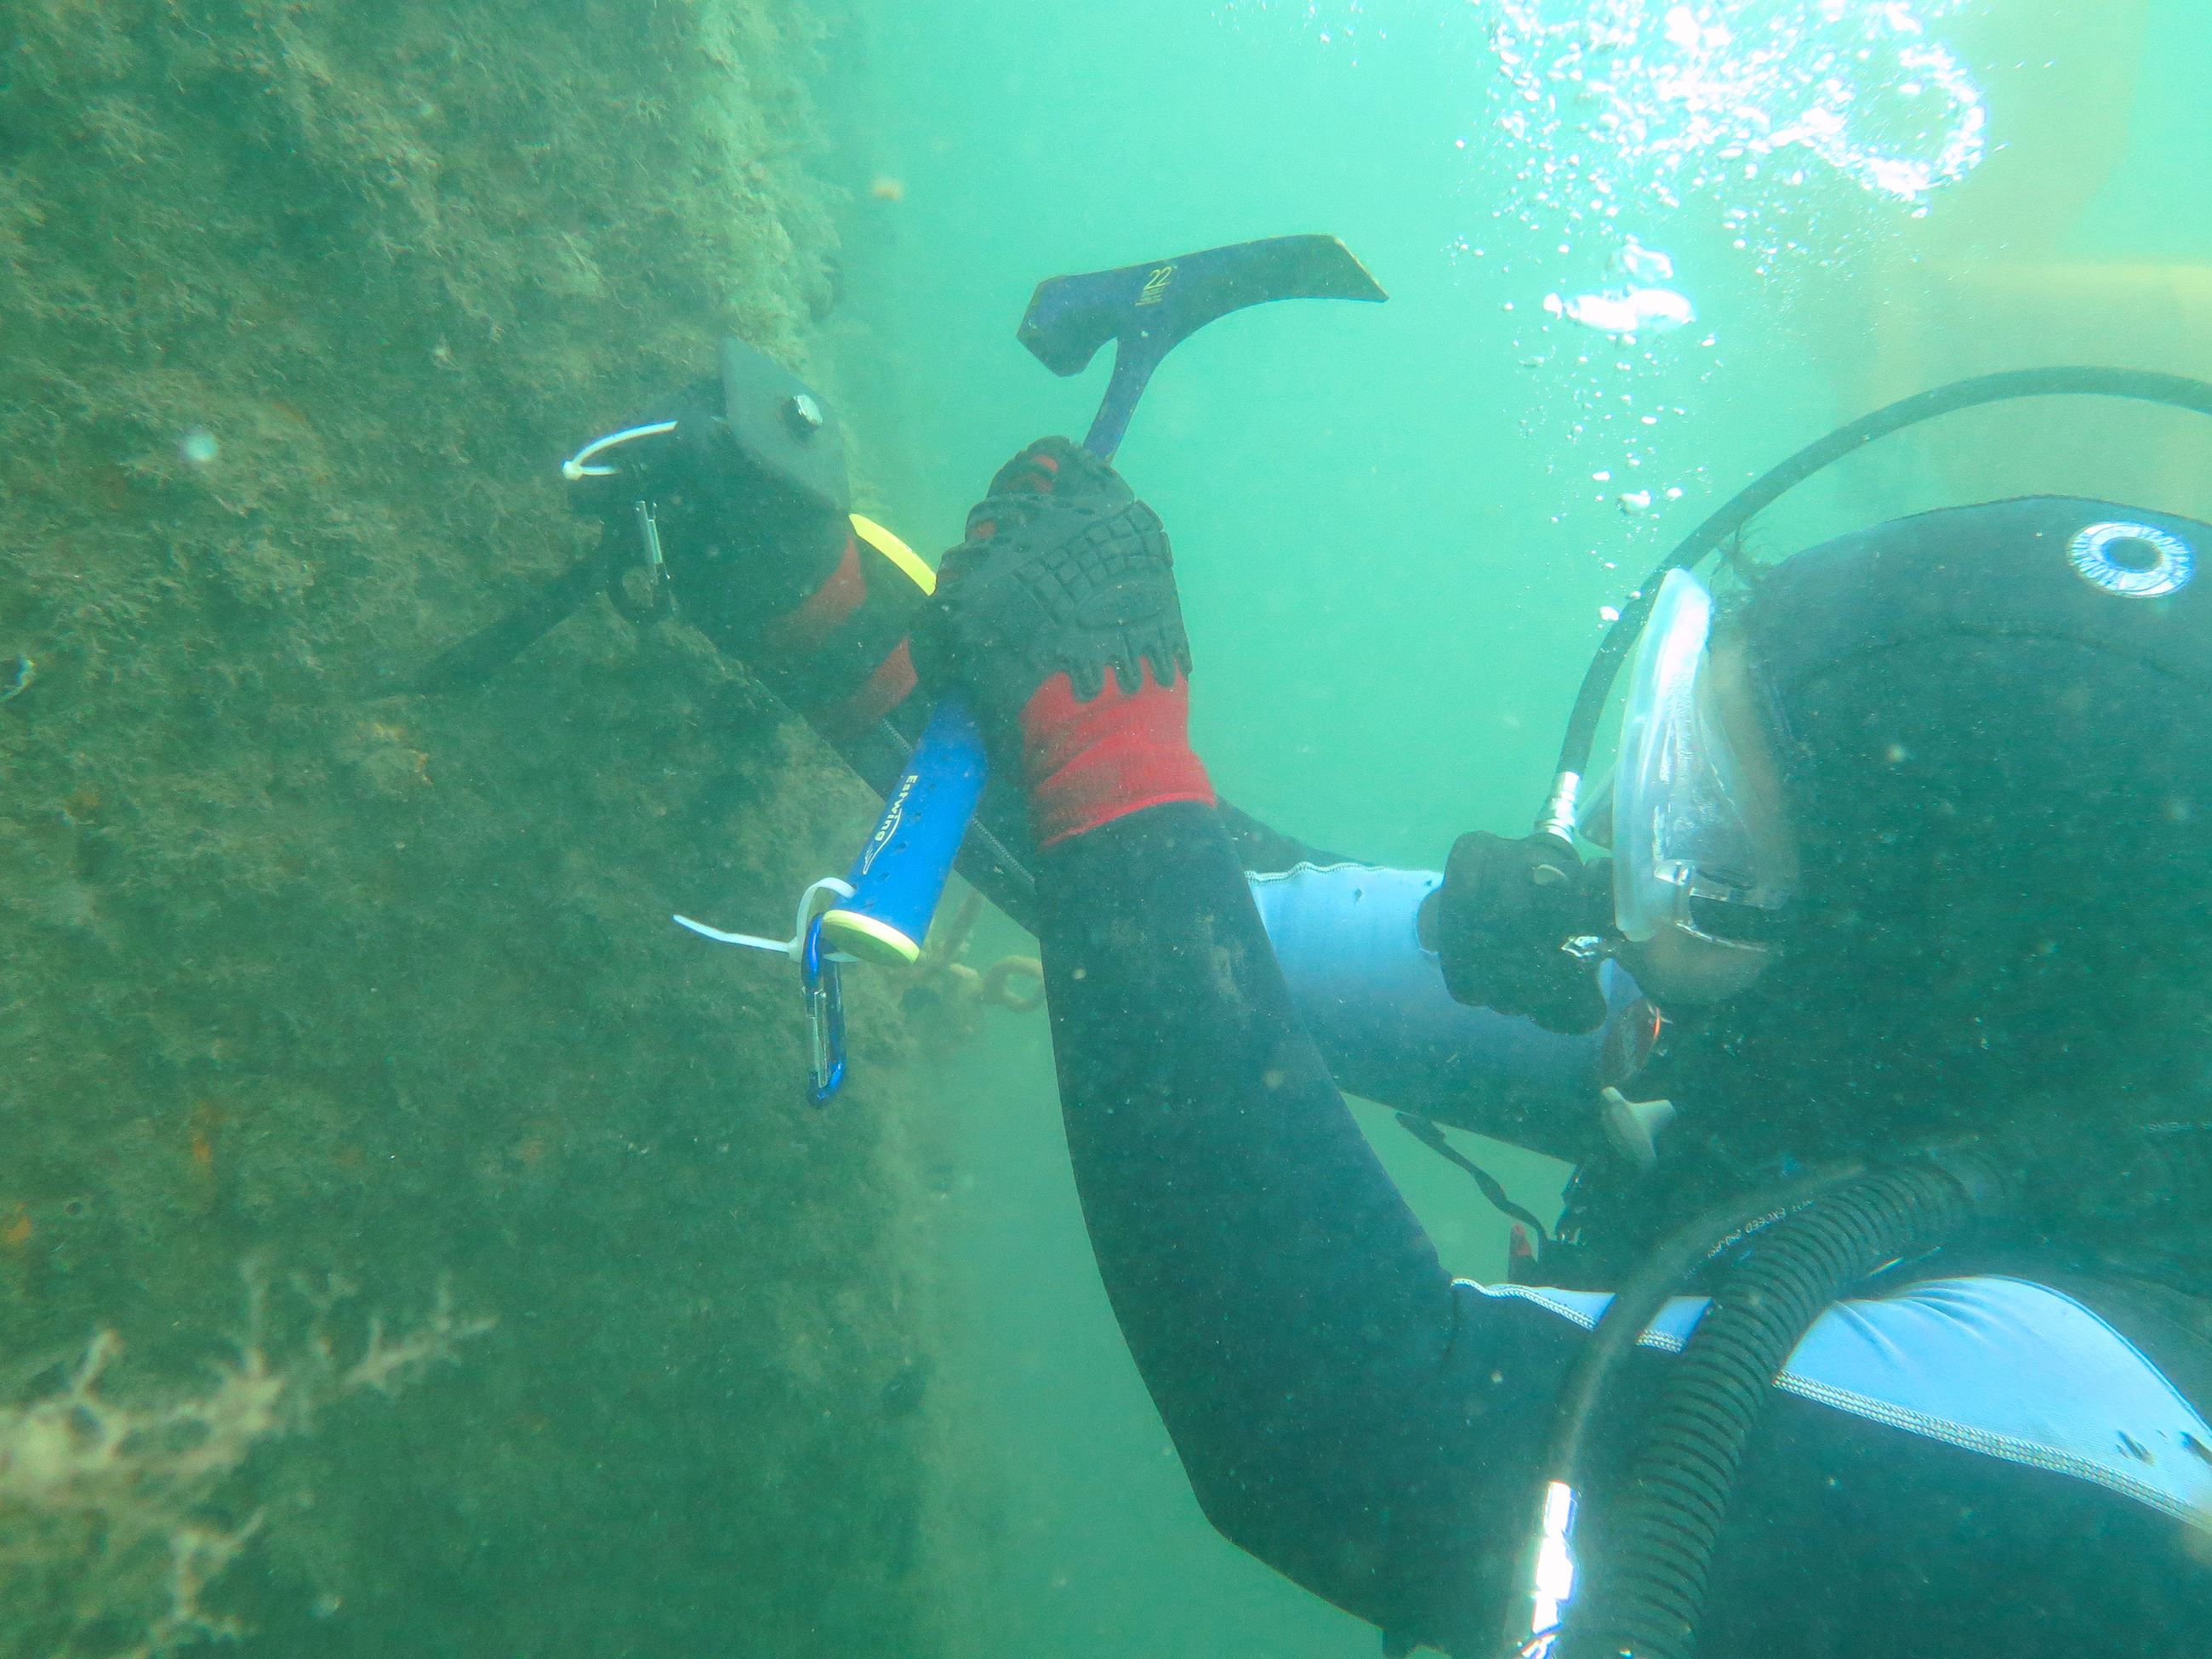 Diver removing stony corals